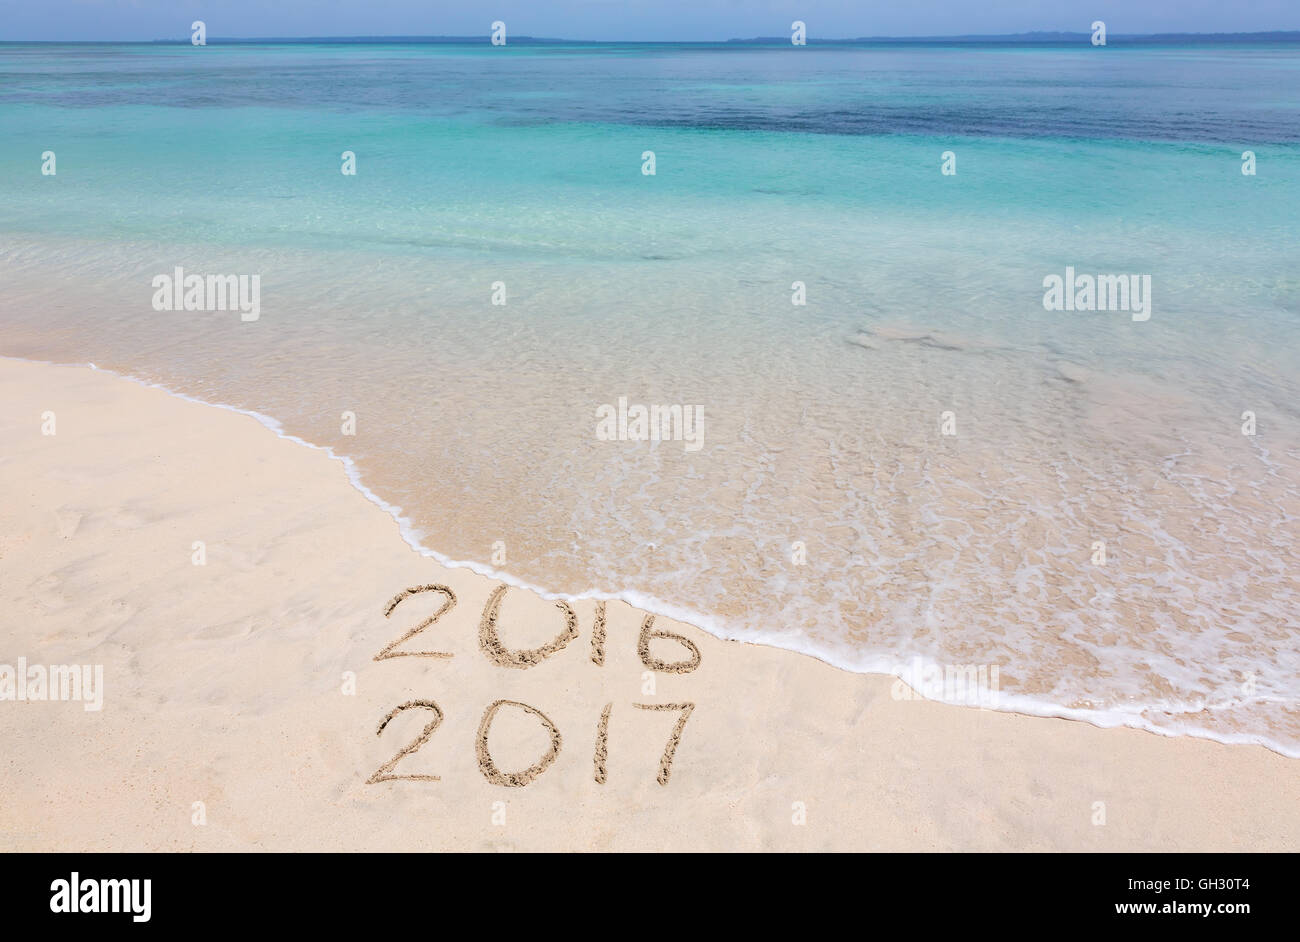 Year 2016 is washed away by ocean wave - Stock Image